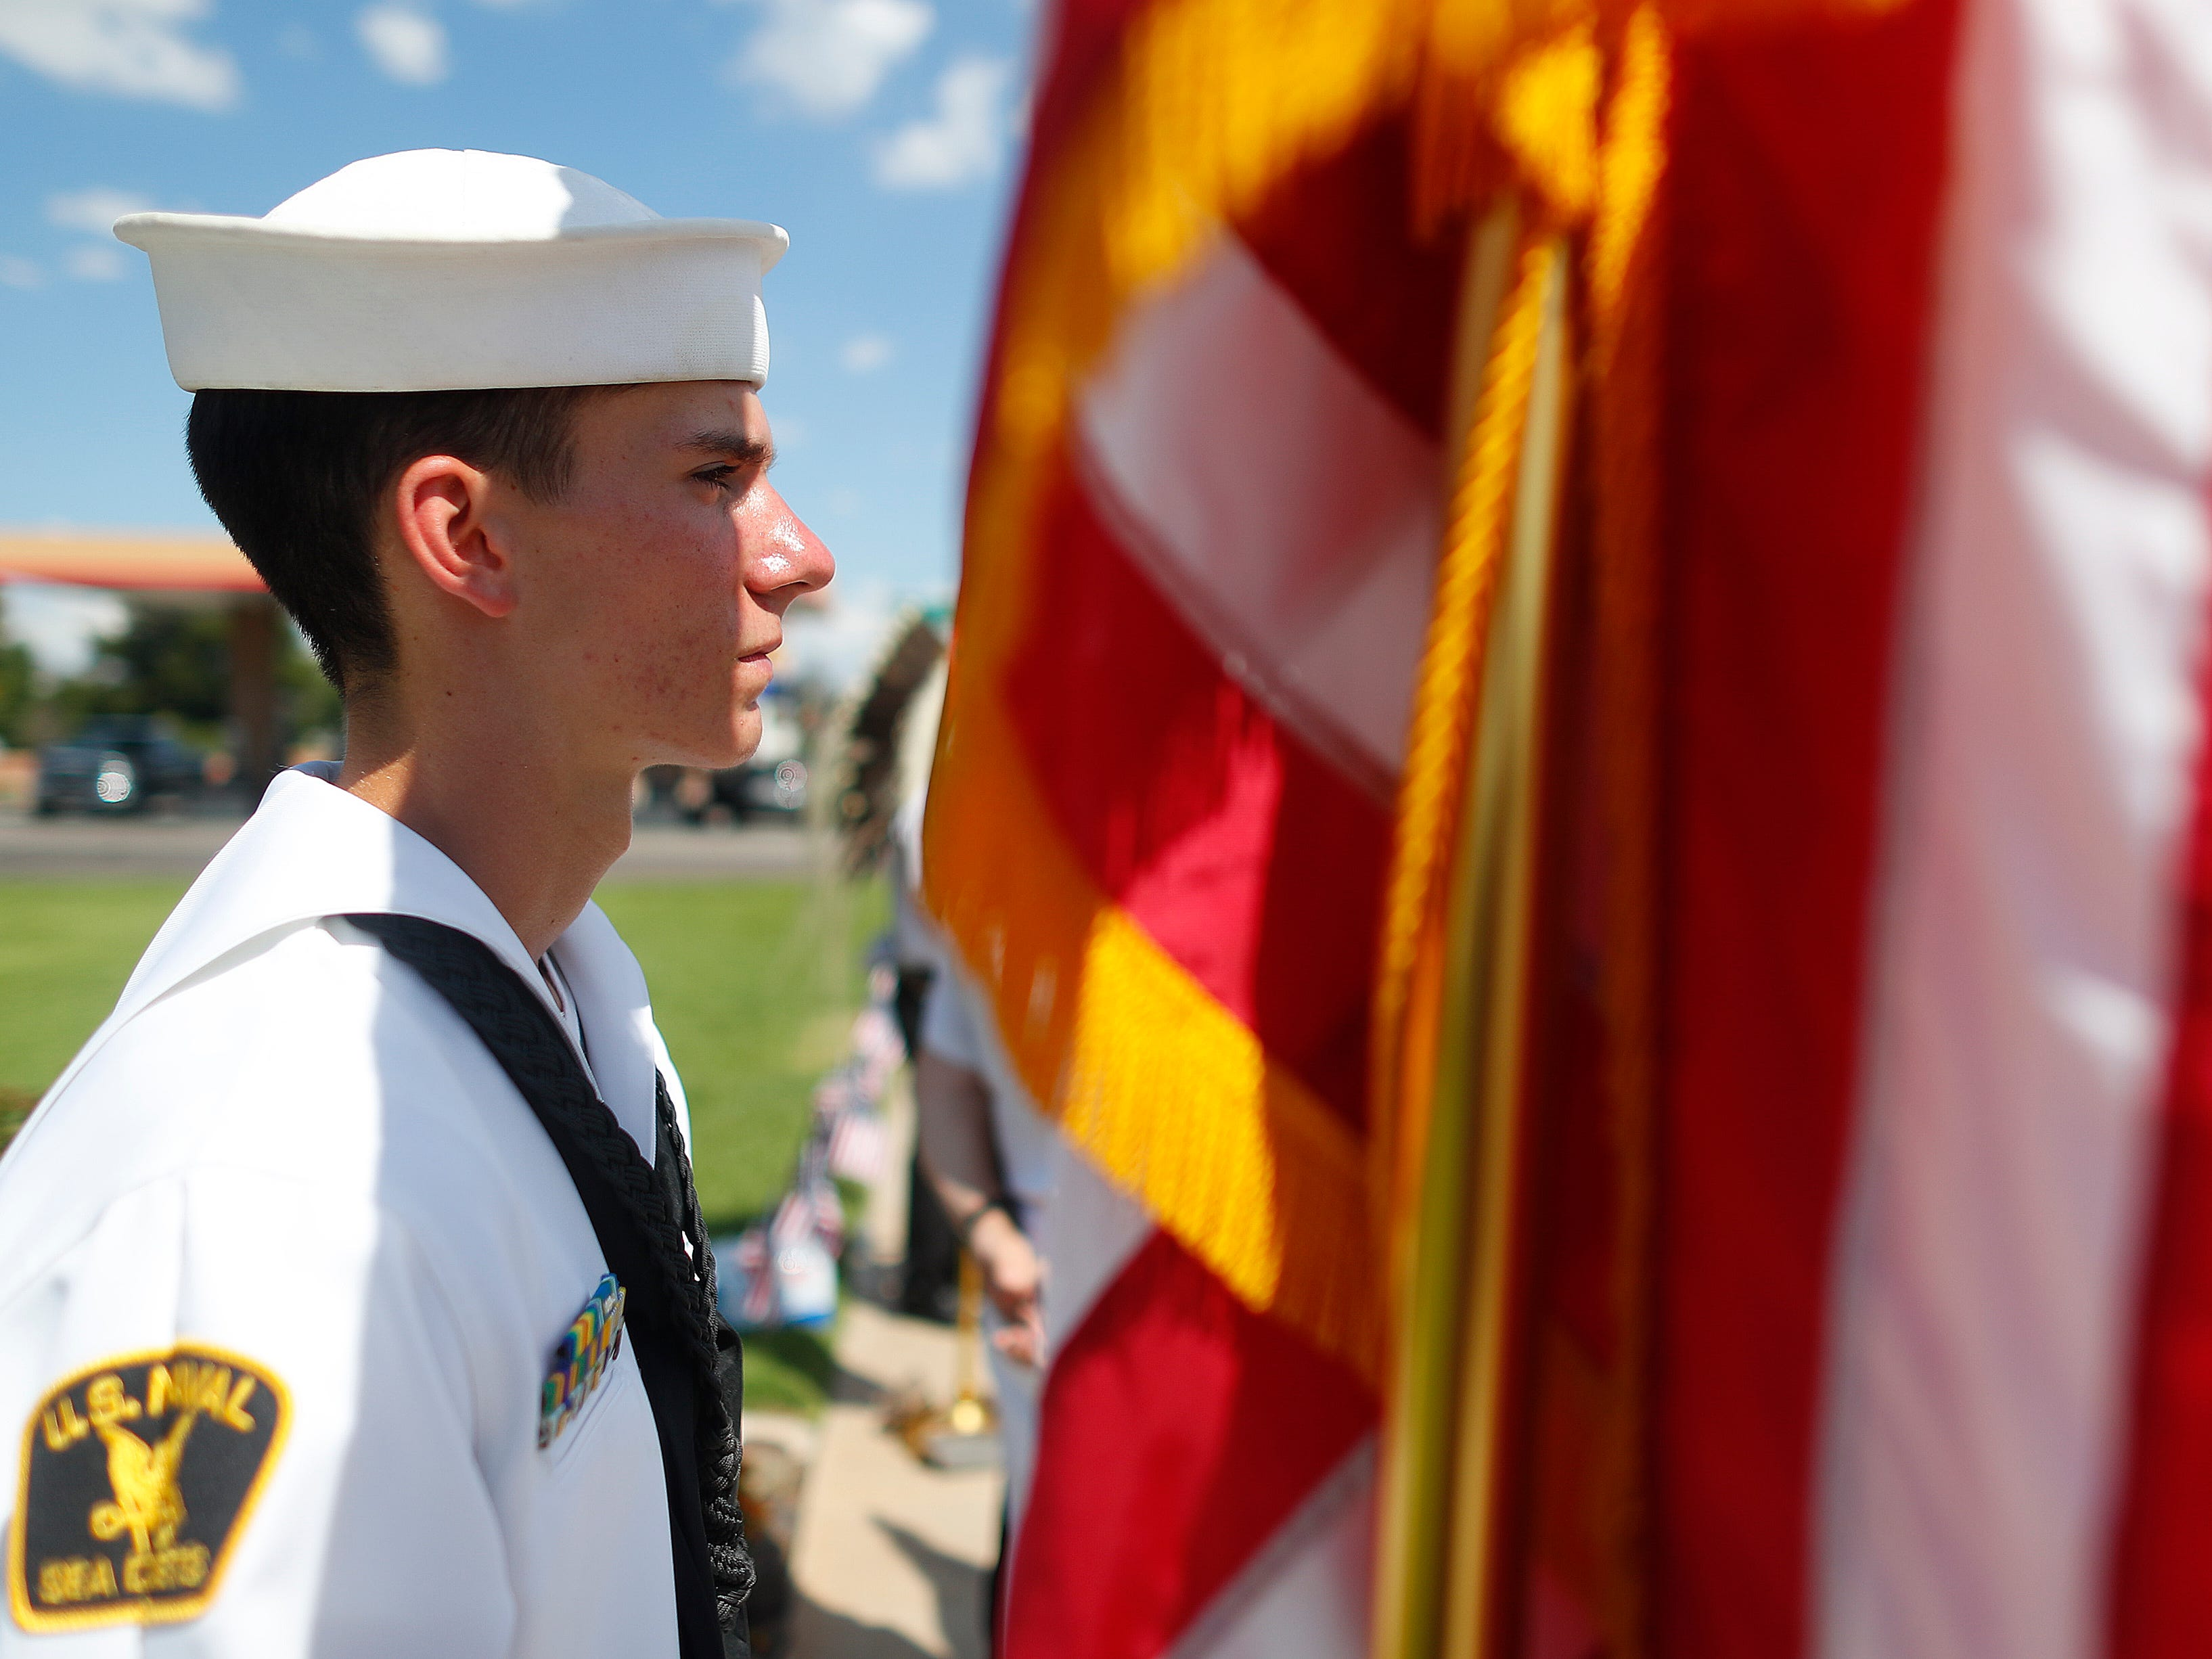 Petty Officer 3rd Class Kyle Vonnahme (USNSCC) holds an American flag in the heat as people come to honor Sen. John McCain outside A.L. Moore-Grimshaw Mortuaries in Phoenix on Aug. 26, 2018.